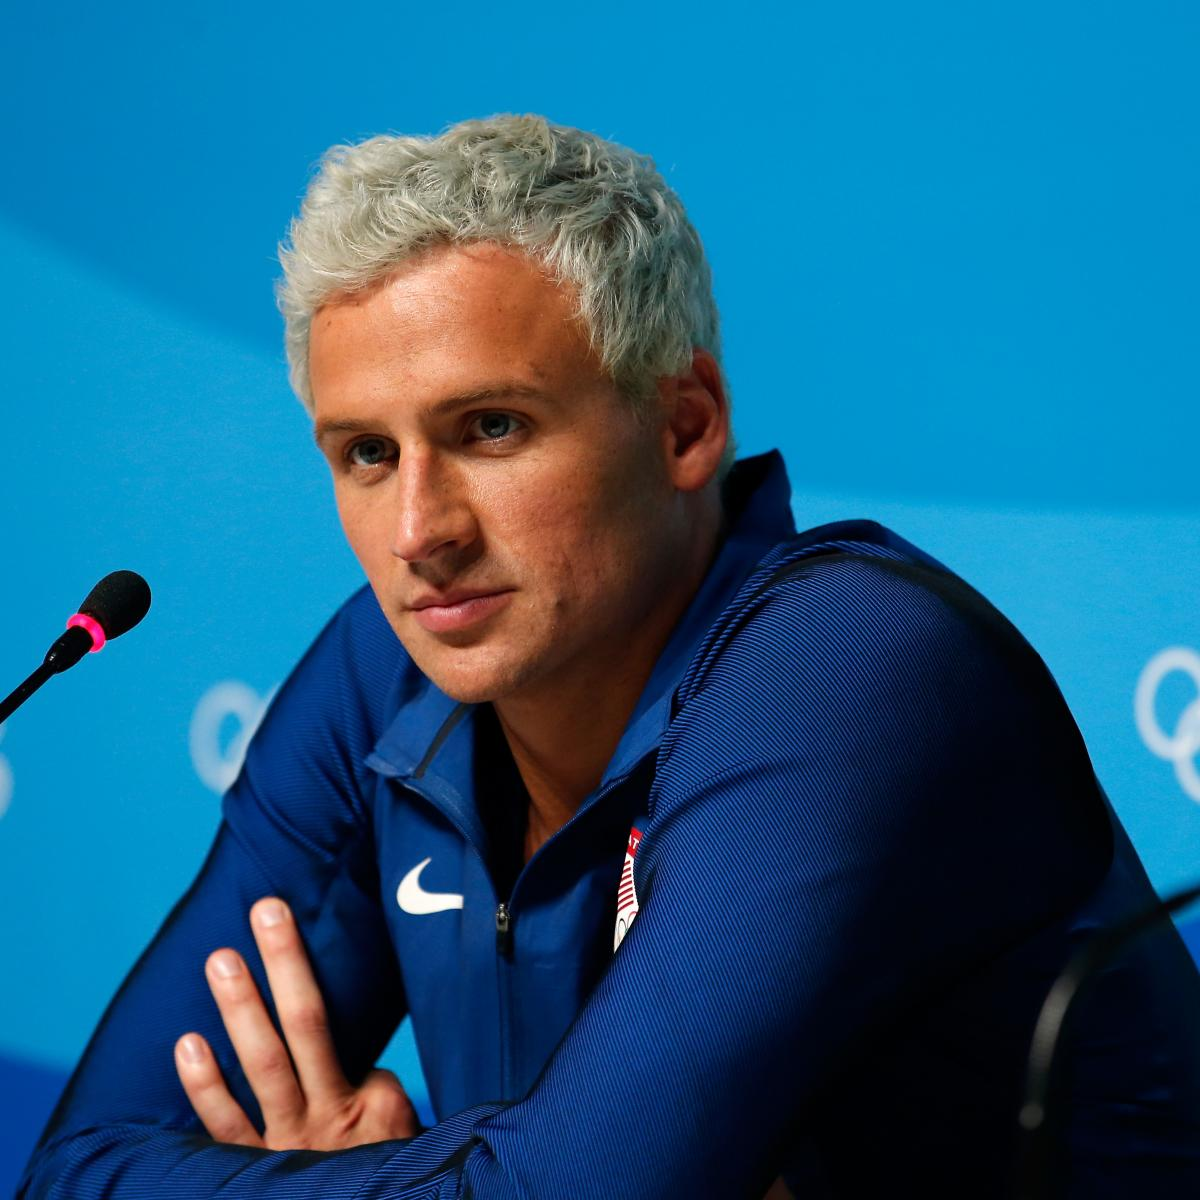 ryan lochte haircut lochte s sponsorship with speedo canceled by company 9829 | hi res 8df121f7f410539f1da00cf72bb670a5 crop exact